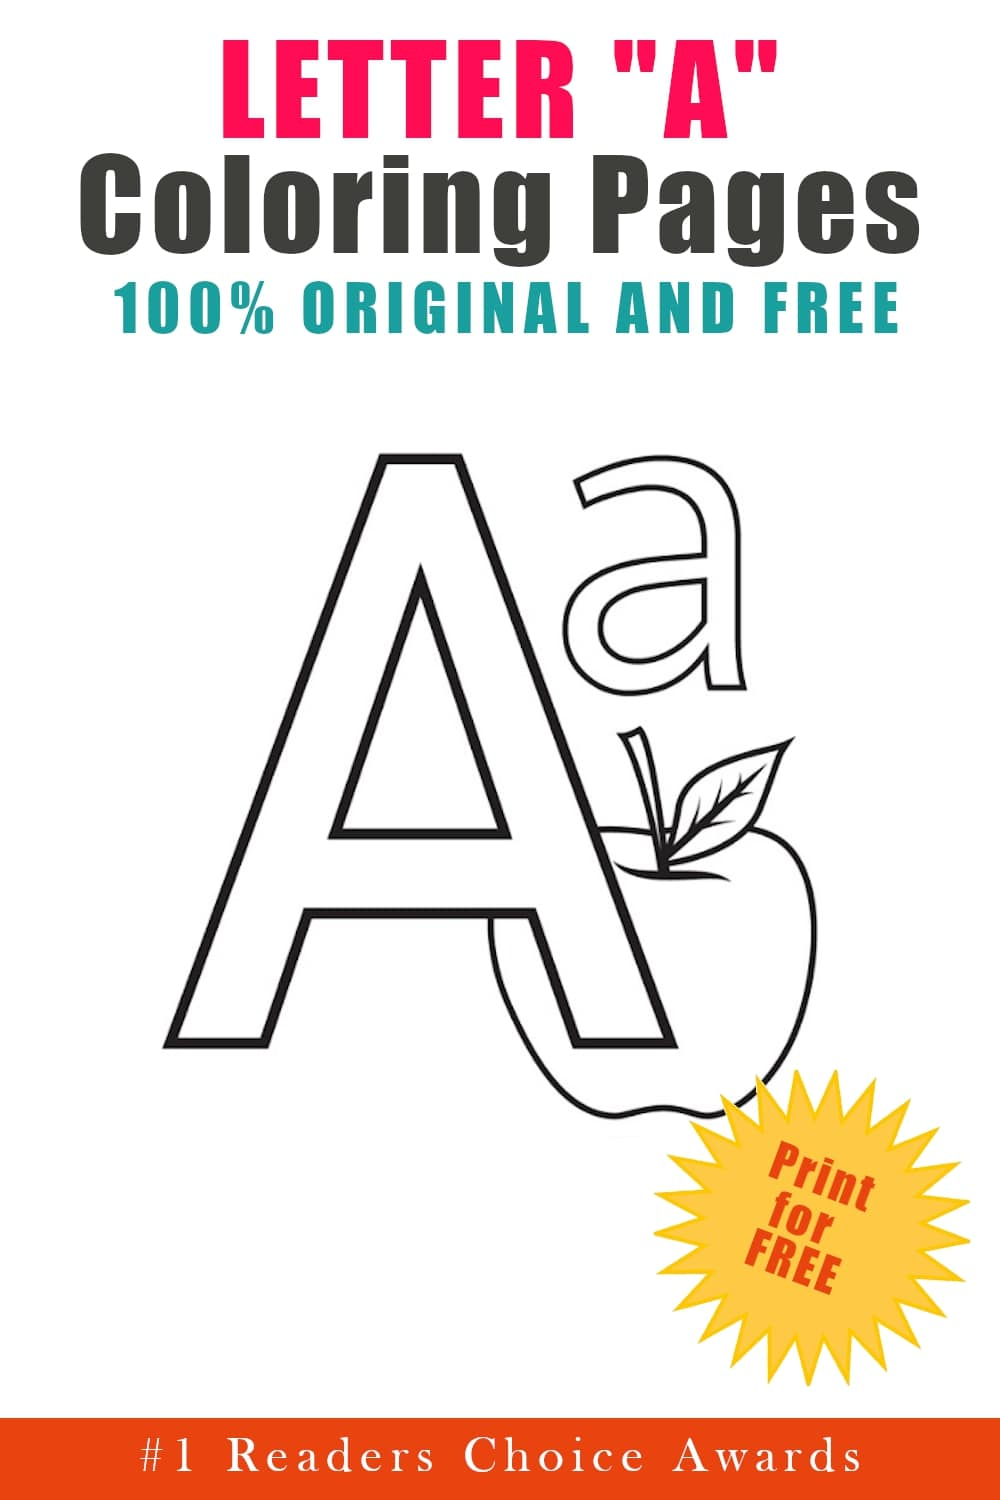 free original letter A coloring pages